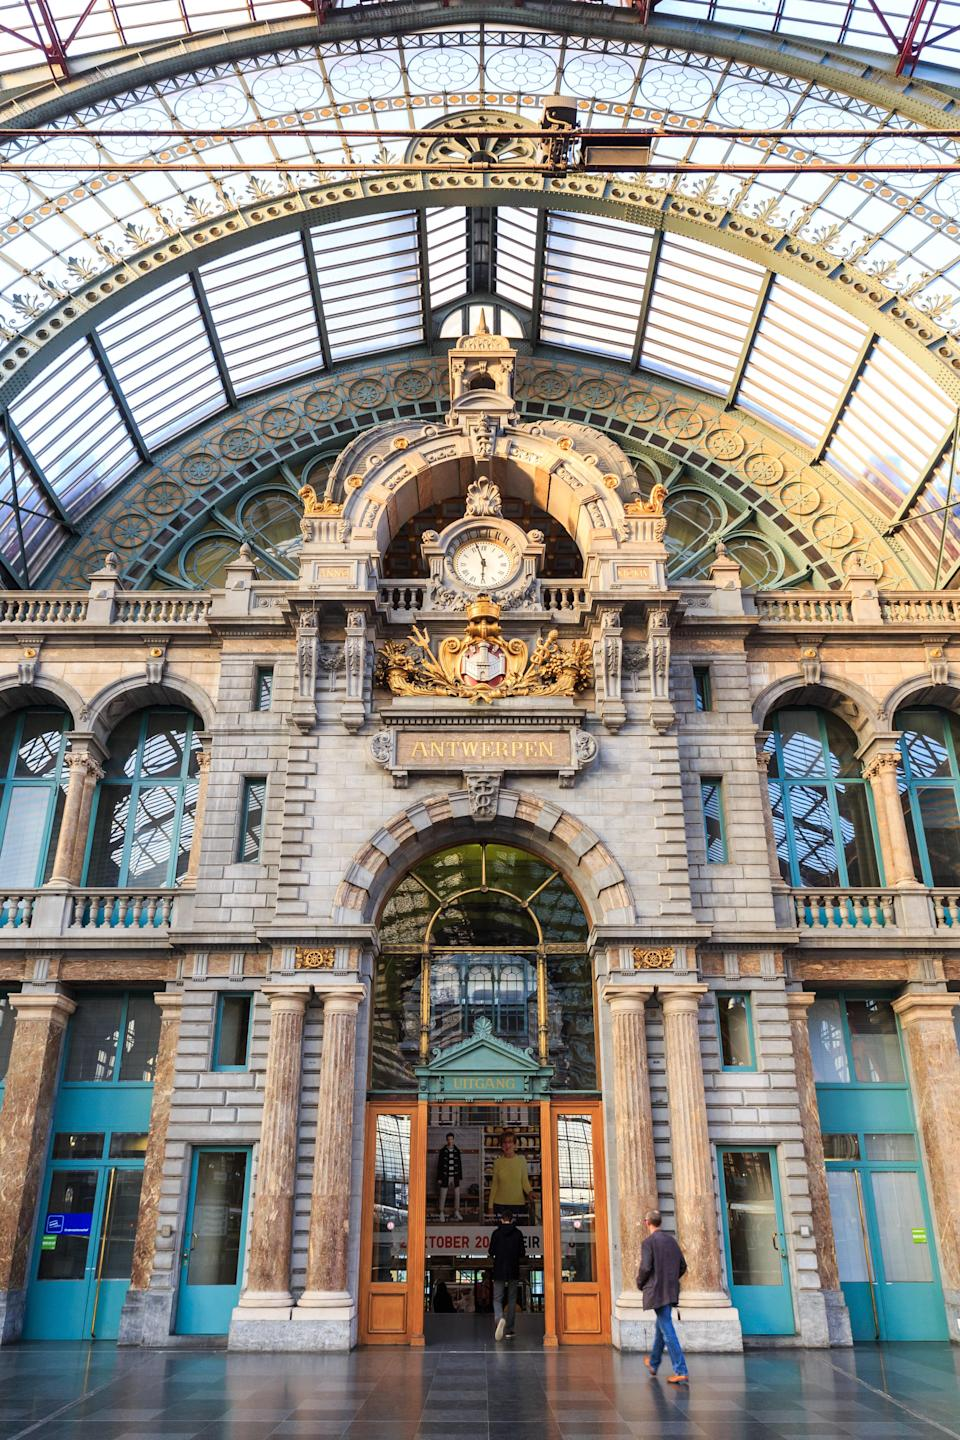 Antwerp's 116-year-old central train hall has withstood a lot, including World War II bombings and a resulting restoration in the 1980s to fix structural damage. But through it all, the steel and glass structure of the light-filled train hall—and the nearly 250-foot-high grand dome at the entrance—have served as the central hub for high-speed and intercity train service. Be sure to check out the equally extravagant architecture of the station's cafe.